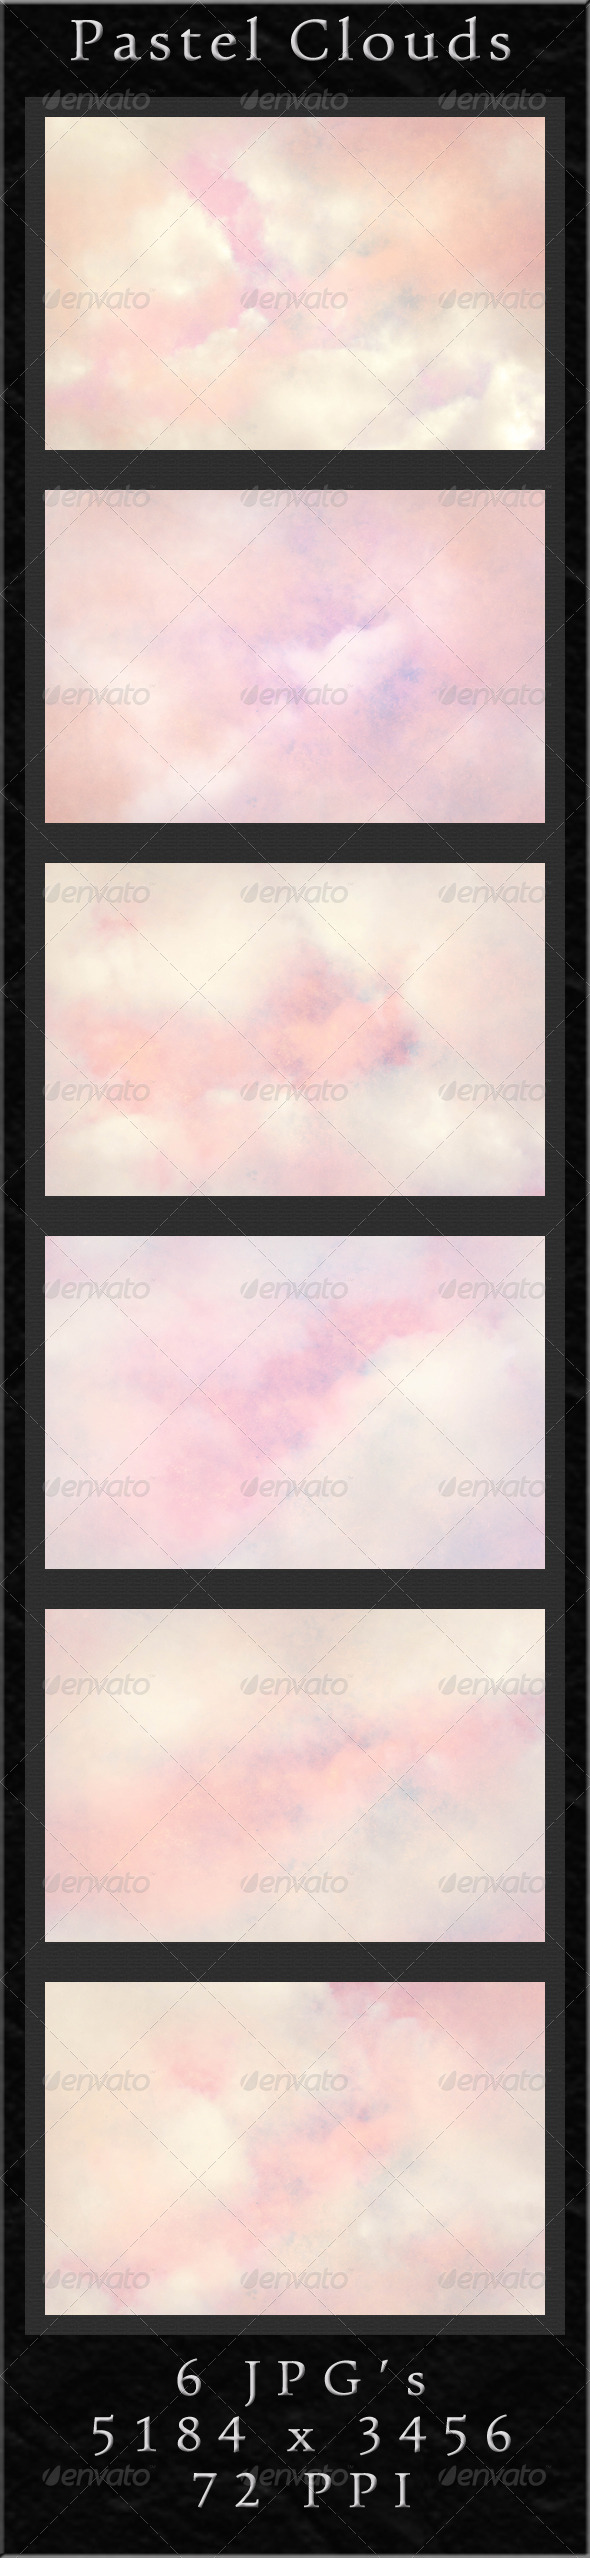 GraphicRiver Pastel Clouds 4266660